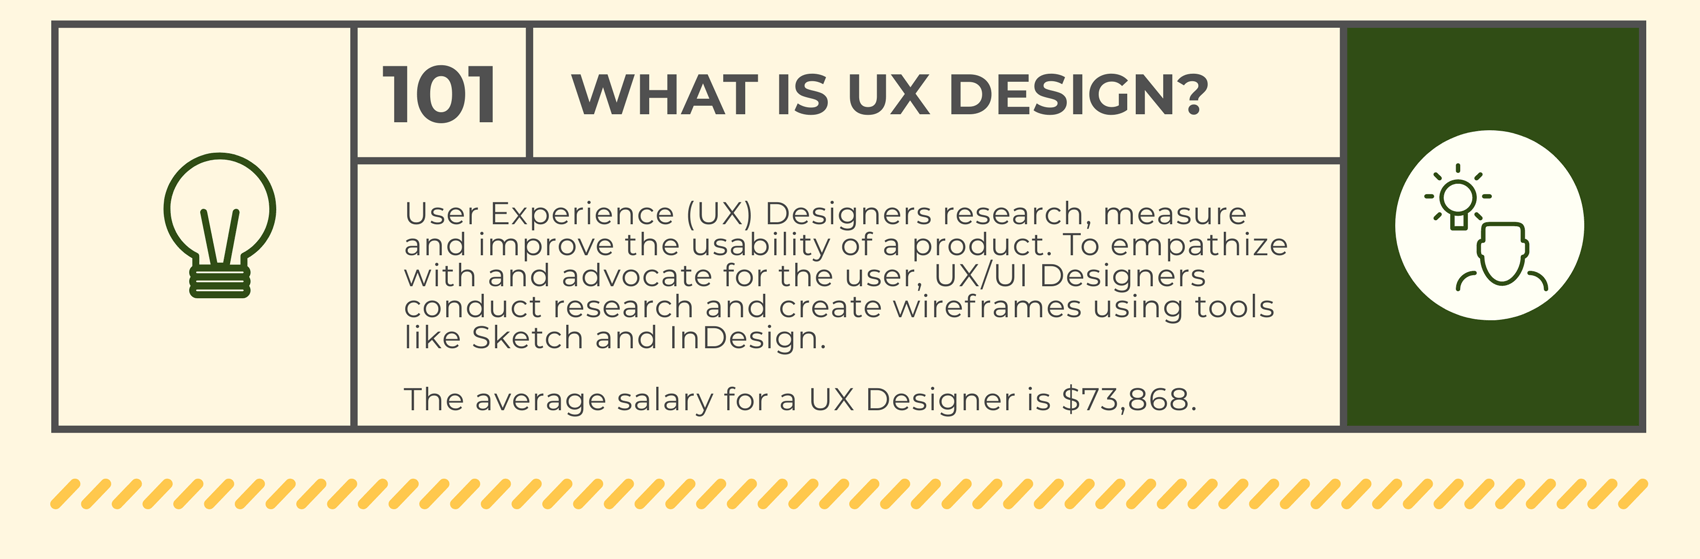 Ux design career track